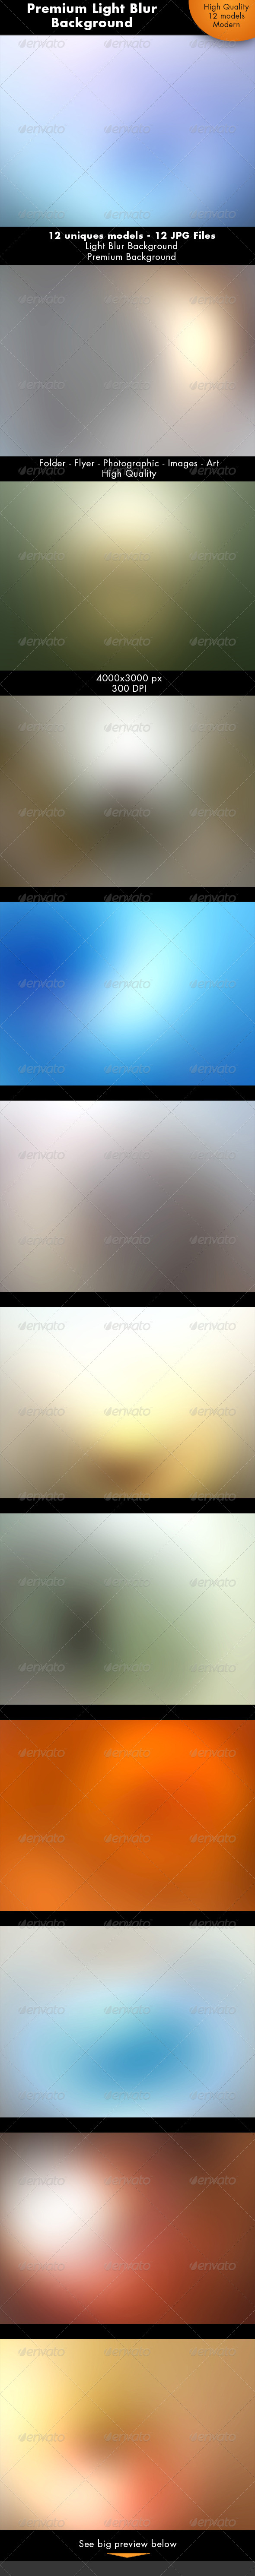 Light Blur Background - Abstract Backgrounds